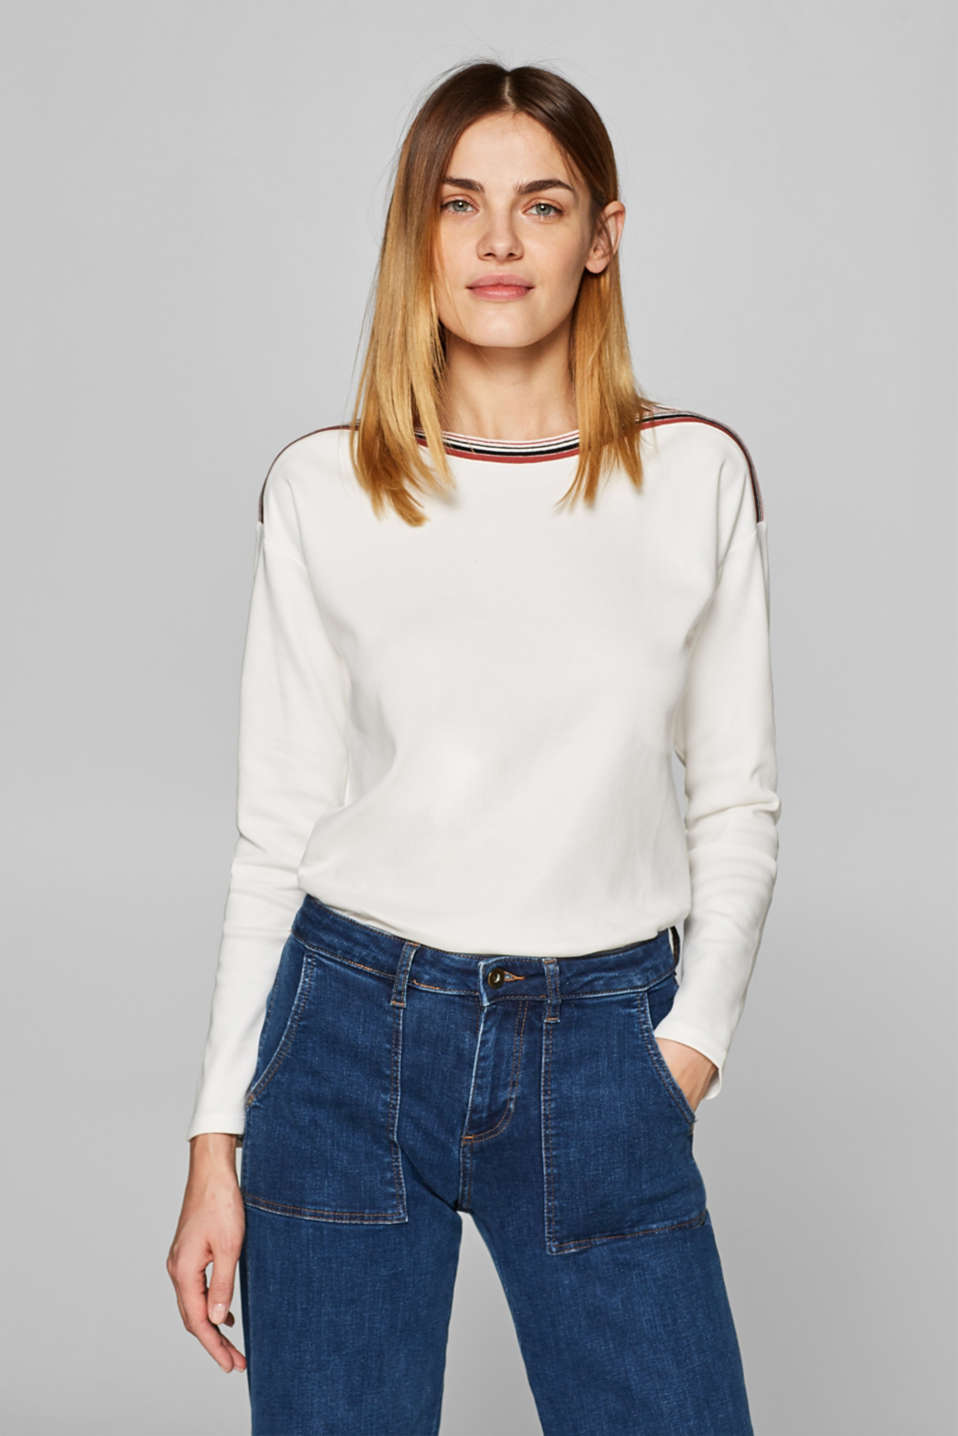 Esprit - Sweatshirt with woven tape 100% cotton